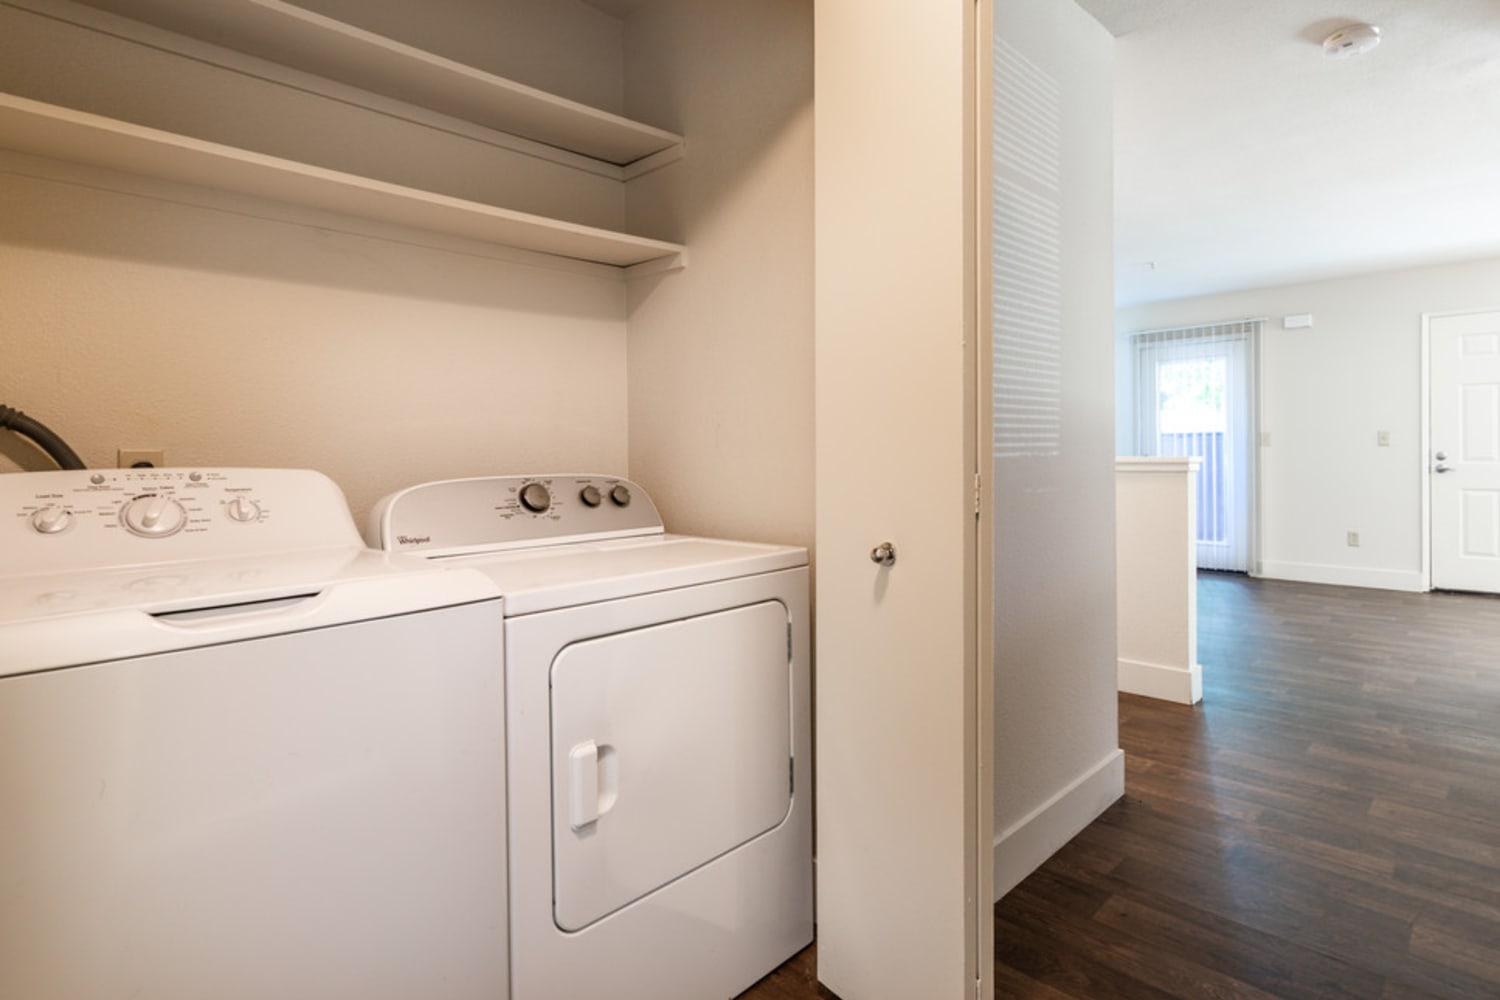 Washer and dryer in unit at La Vina Apartments in Livermore, California